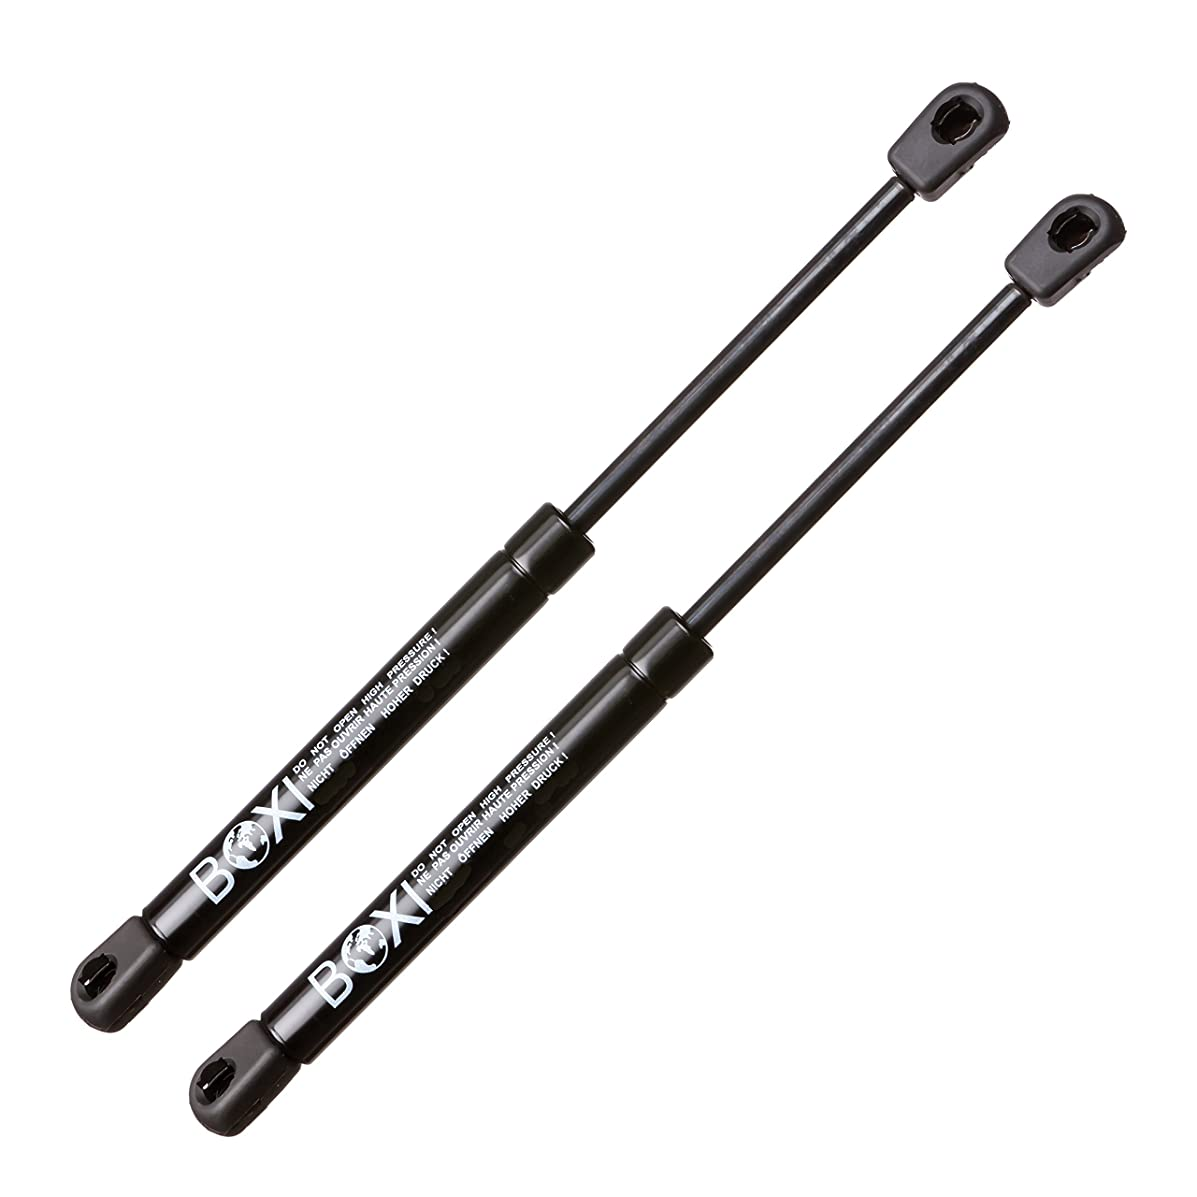 BOXI 2 Pcs Liftgate Gas Charged Lift Support For Nissan 240SX 89-90, Nissan Pathfinder 87-95, Nissan Terrano 87-89, Nissan Terrano 91-95, Nissan Torrano 87-95 Liftgate 4758